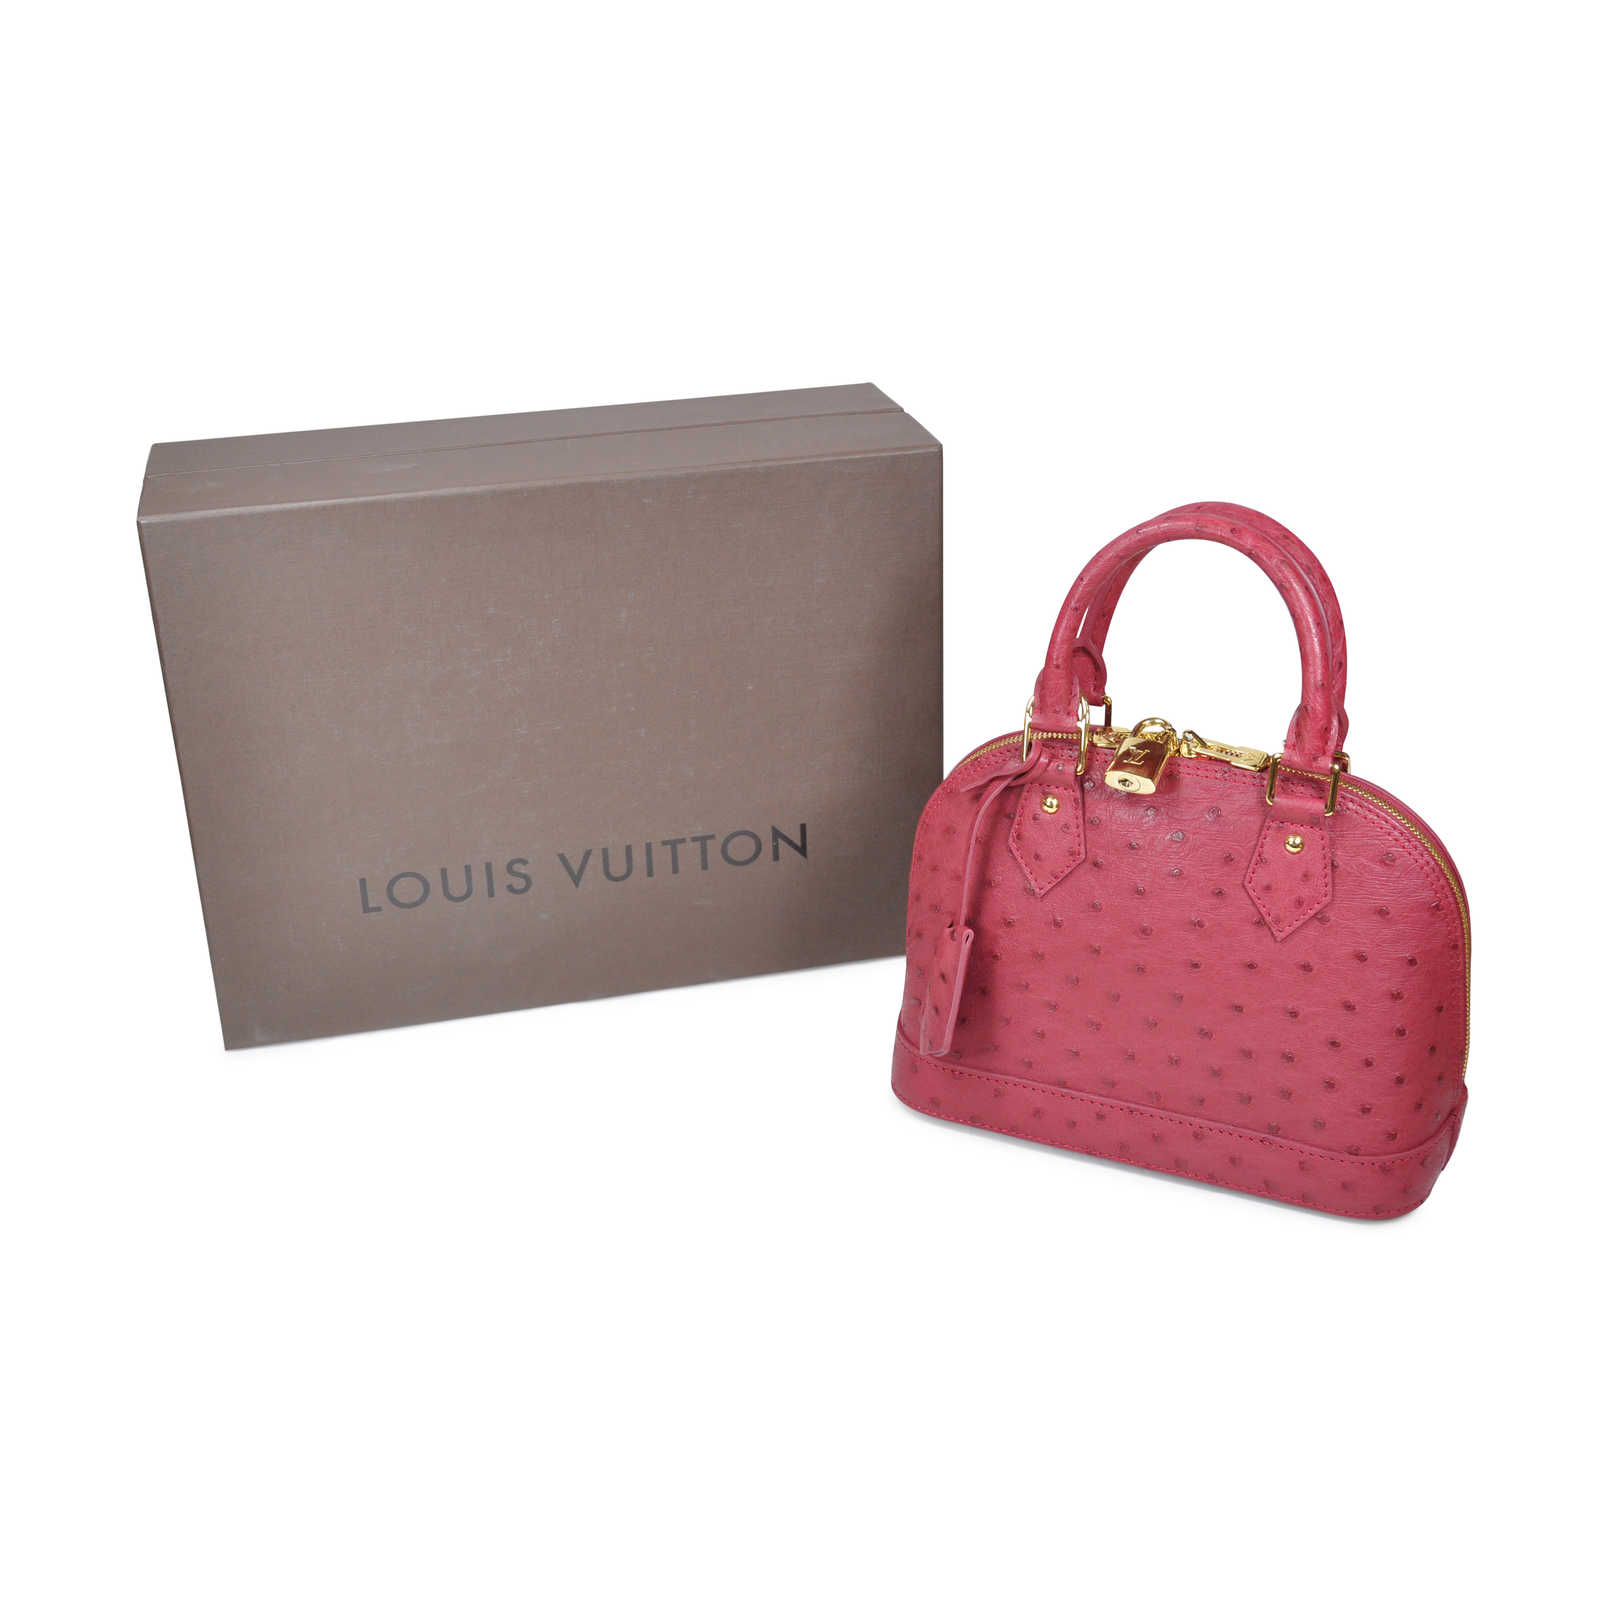 ... Authentic Pre Owned Louis Vuitton Ostrich Alma BB Bag (PSS-020-00019) b875f682a